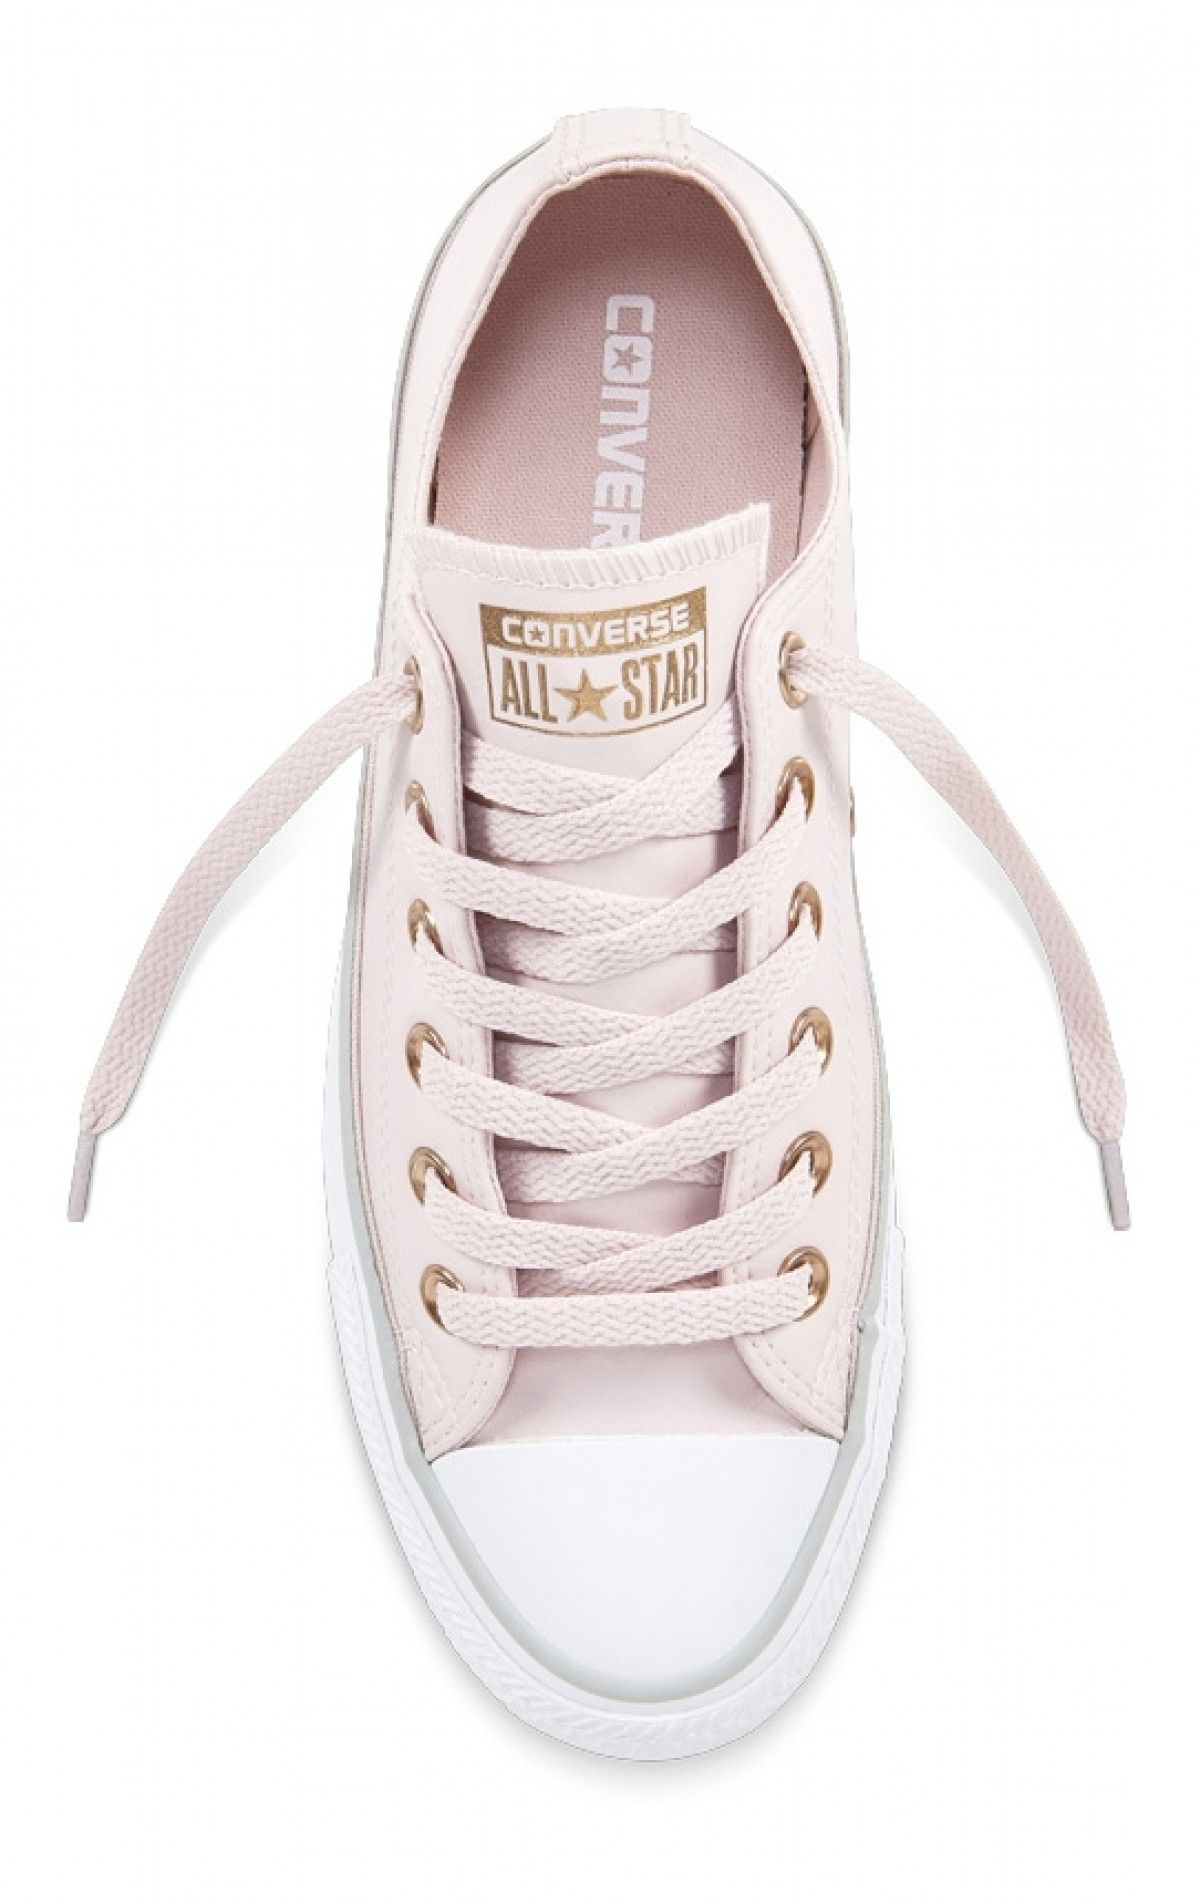 7c402ed128b2 Converse Chuck Taylor All Star Women s Leather Low Top Barely  Rose White Mouse 559945C